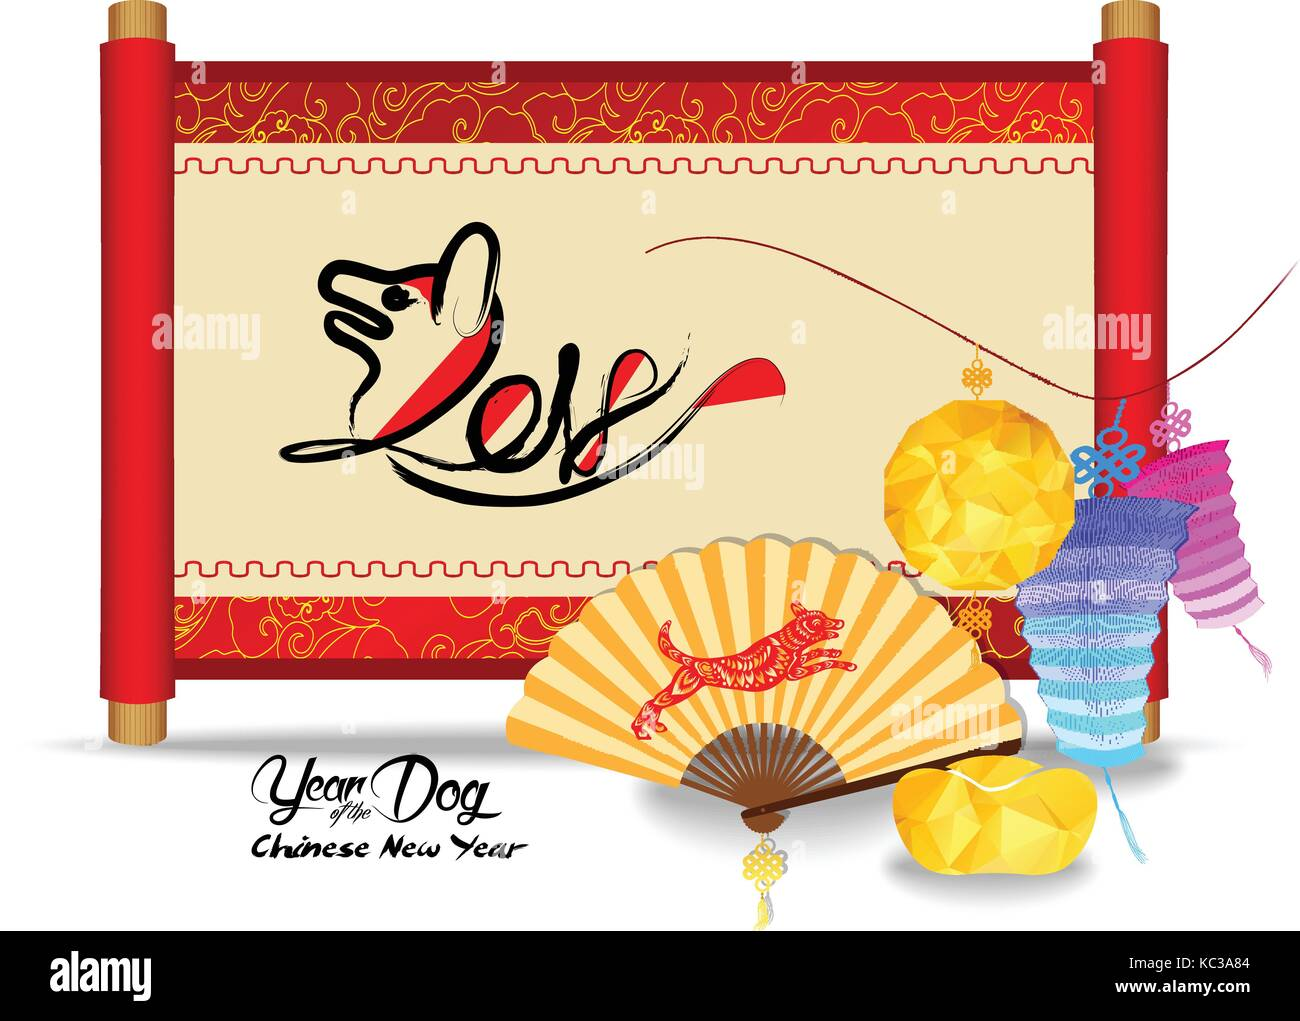 Chinese New Year Greeting With Chinese Festive Symbols In Oriental